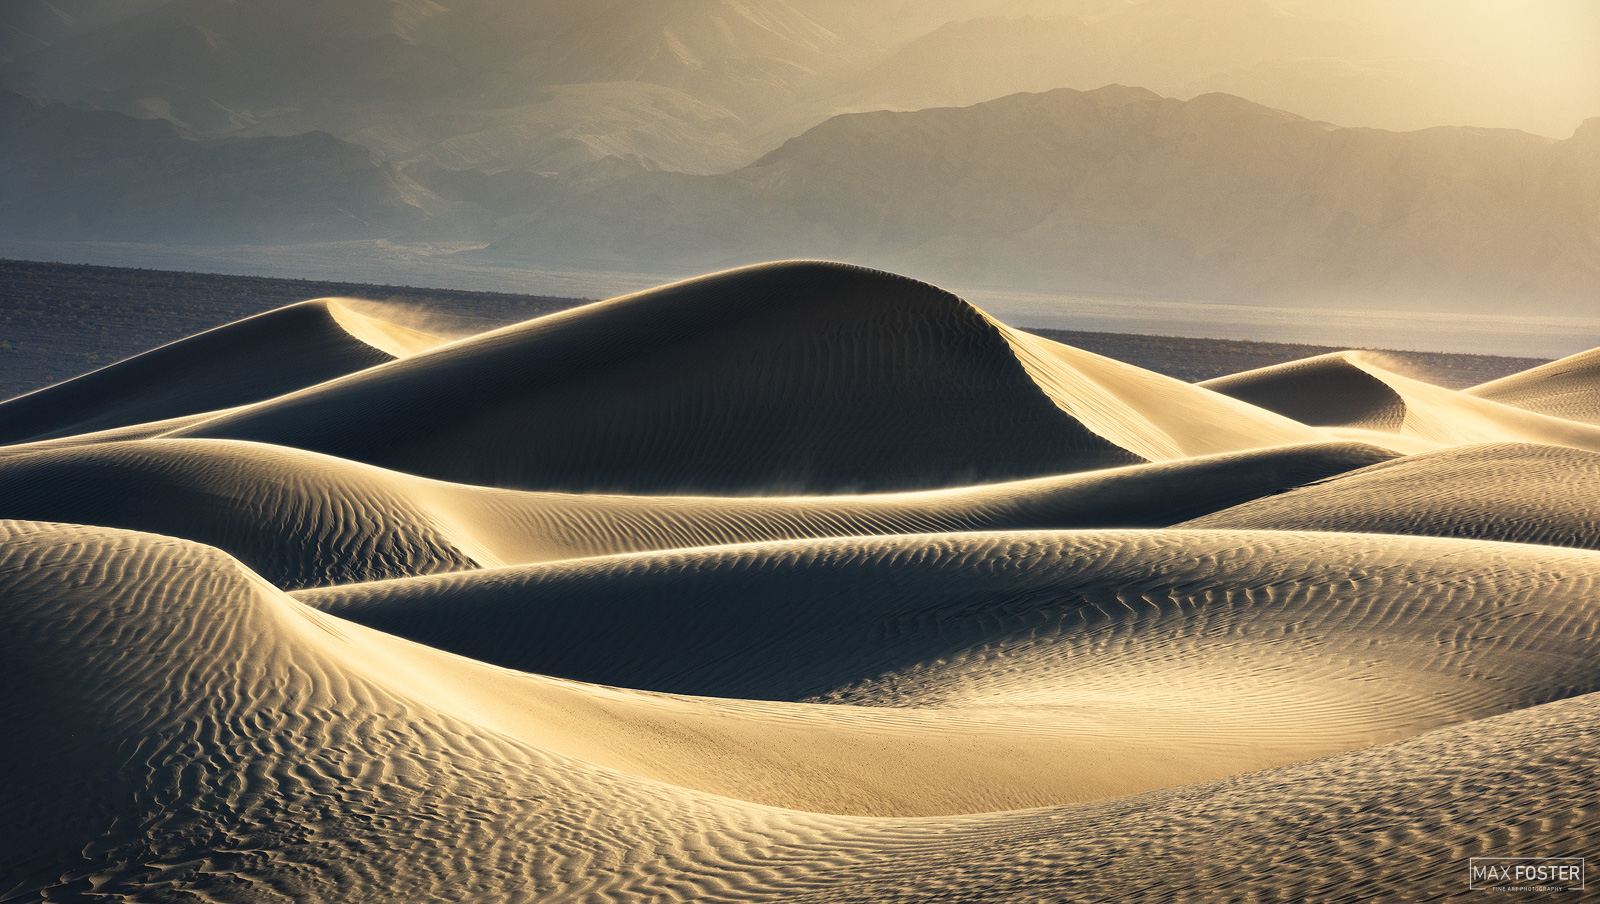 Fine Art Limited Edition of 50 A desert is a barren area of landscape where little precipitation occurs and, consequently, living...